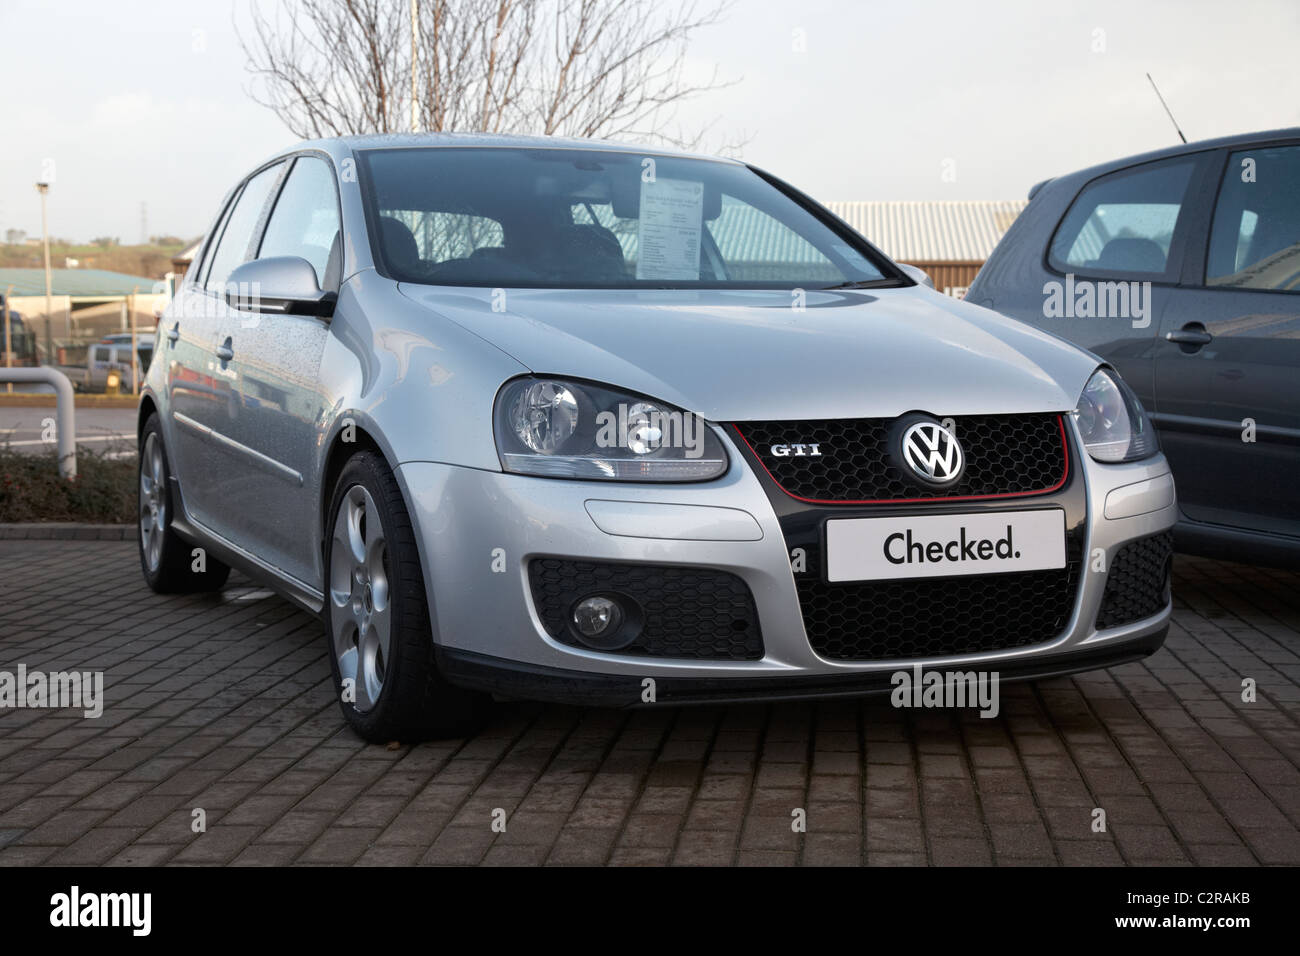 shot royalty sale editorial showroom auto vw image photos cars halden dealer emblem volkswagen to been used of as free for show norway photo have stock dahle